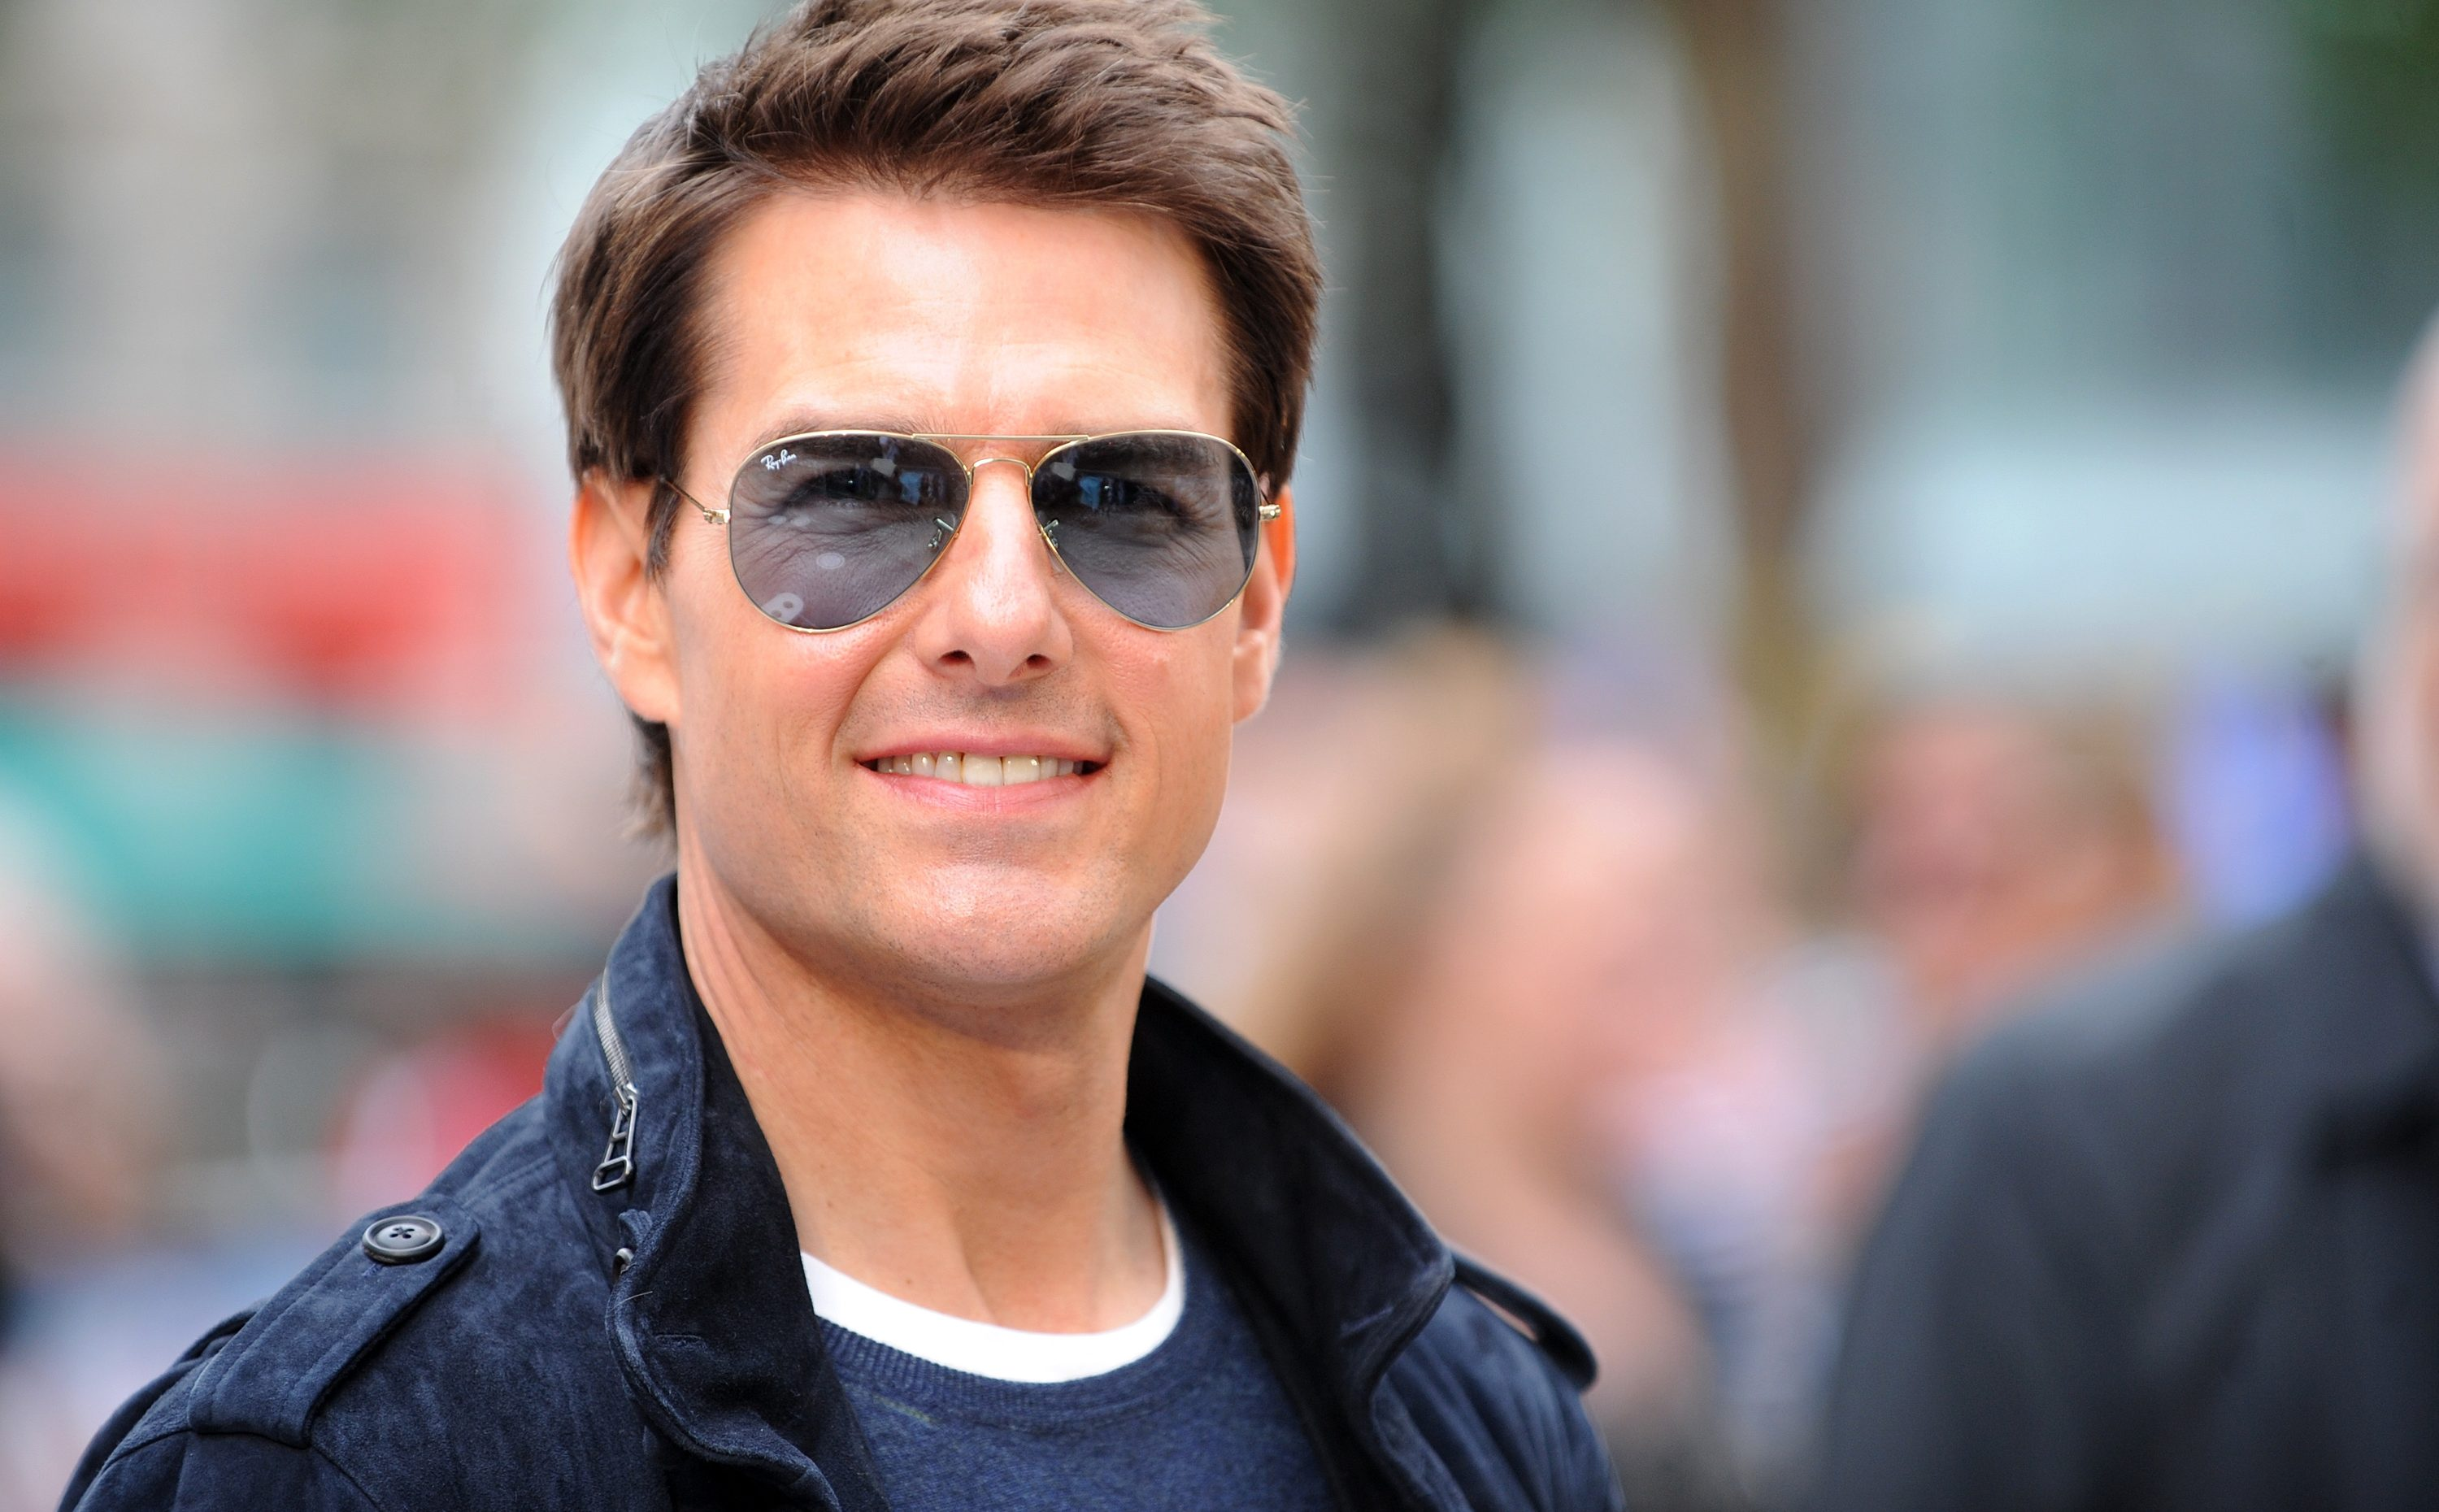 What Makes Tom Cruise Irresistible? | Featured Image